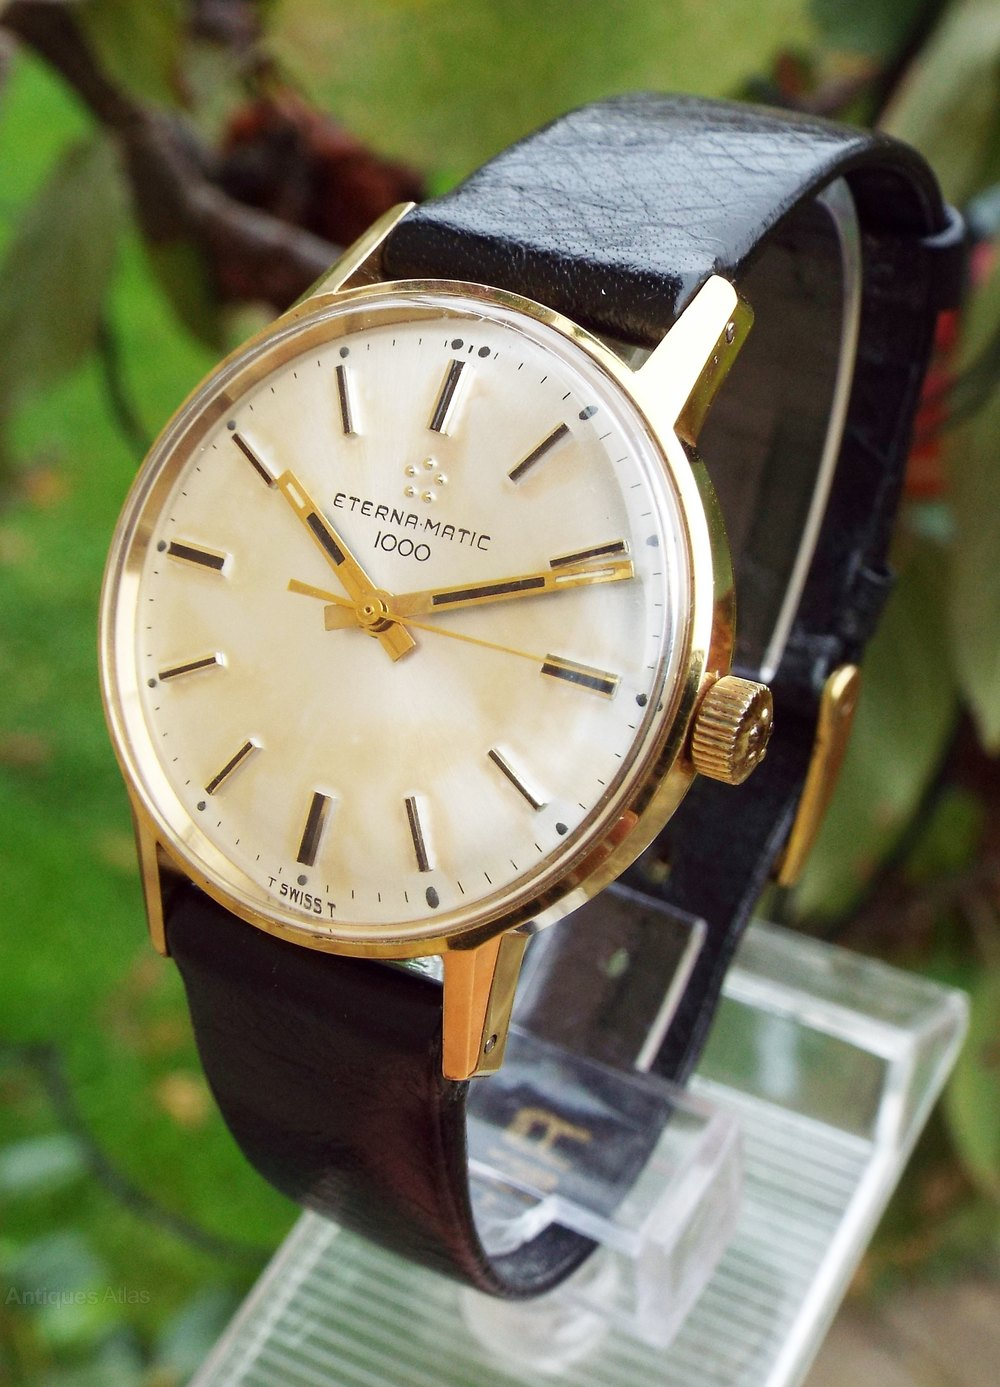 1000 Images About Bi Level Homes On Pinterest: Gents Eterna-Matic 1000 Wrist Watch, 1968